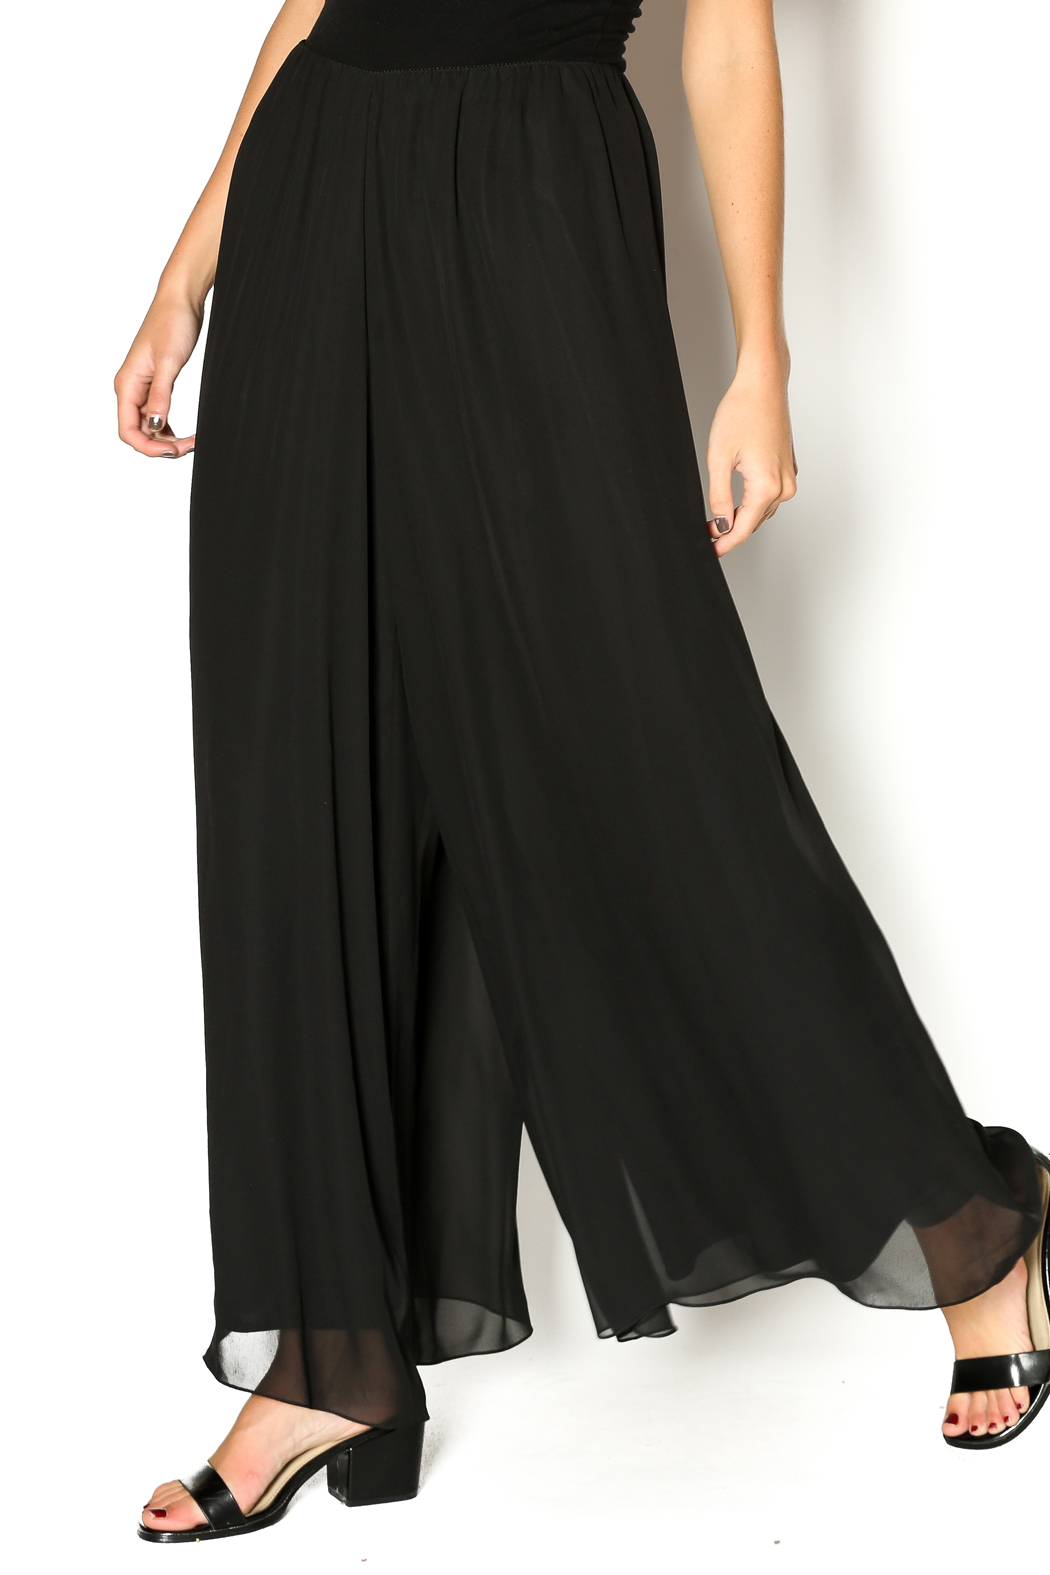 Scarborough Fair Chiffon Palazzo Pant From Saint Paul By